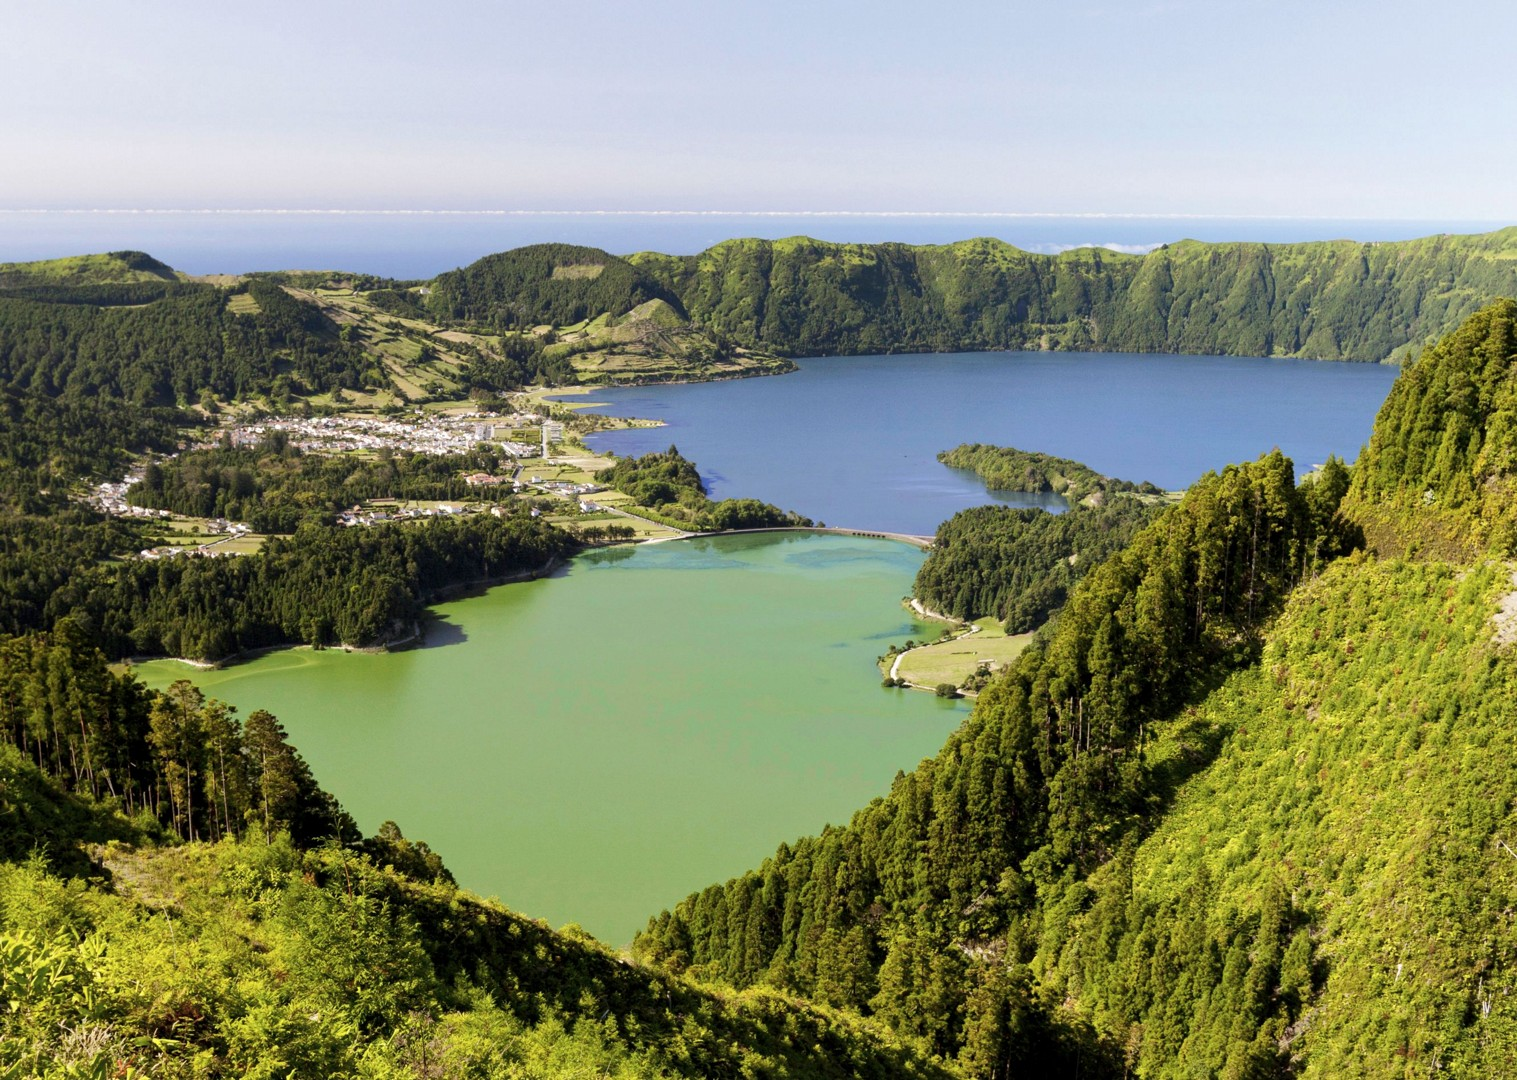 cidades-lake-scenery-azores-cycling-trip-for-family.jpg - The Azores - Island Discoverer - Family Cycling